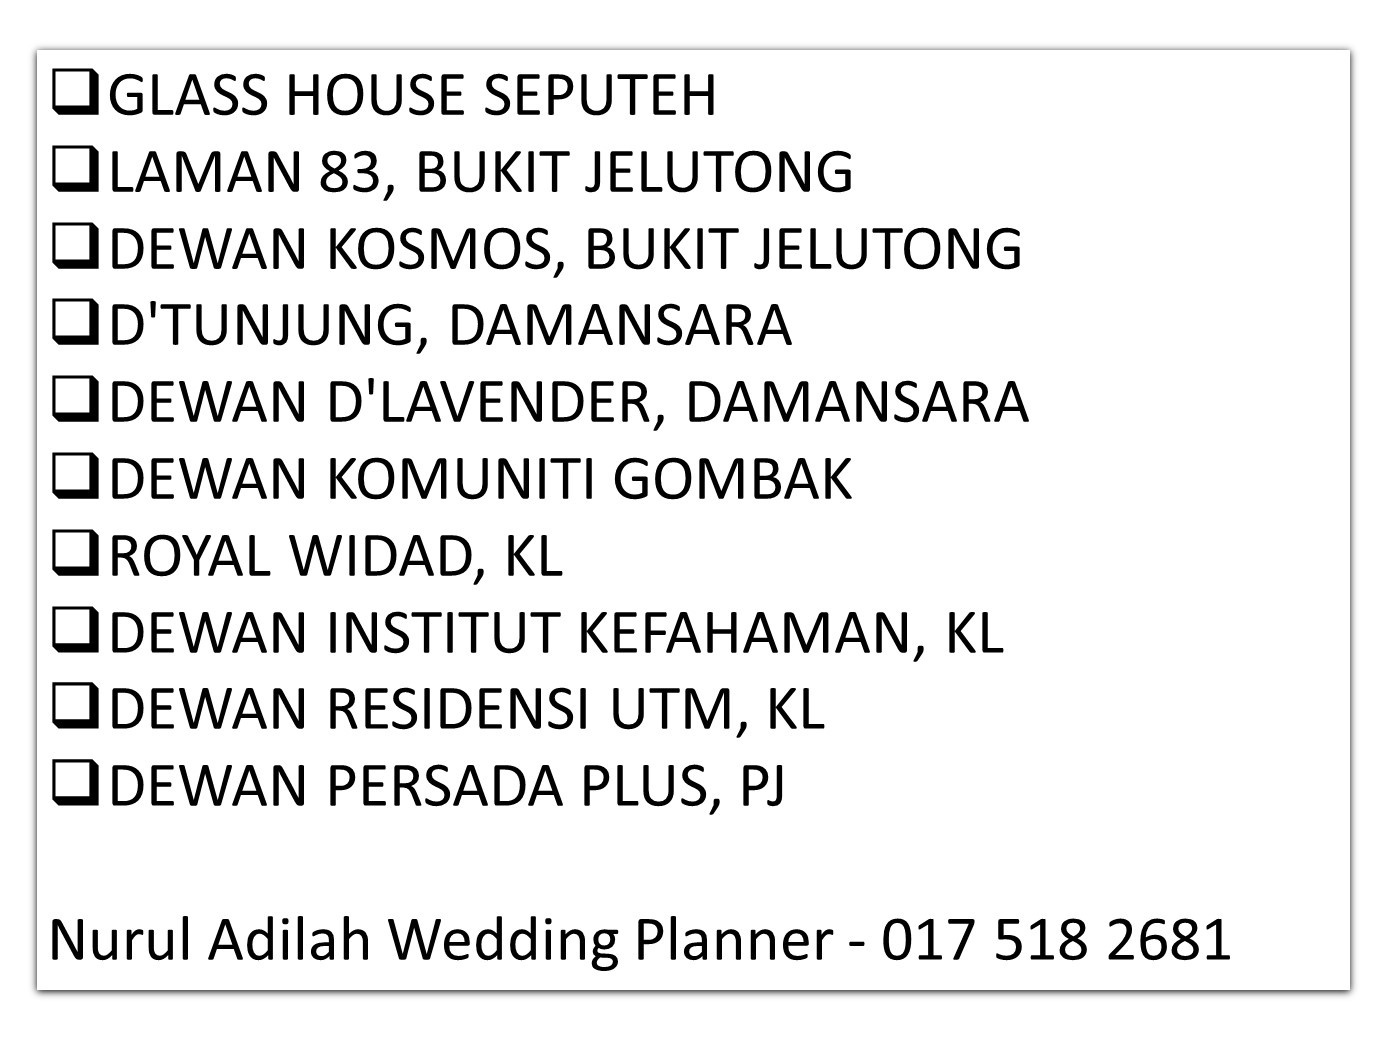 0175182681-nurul-adilah-wedding-planner-2020